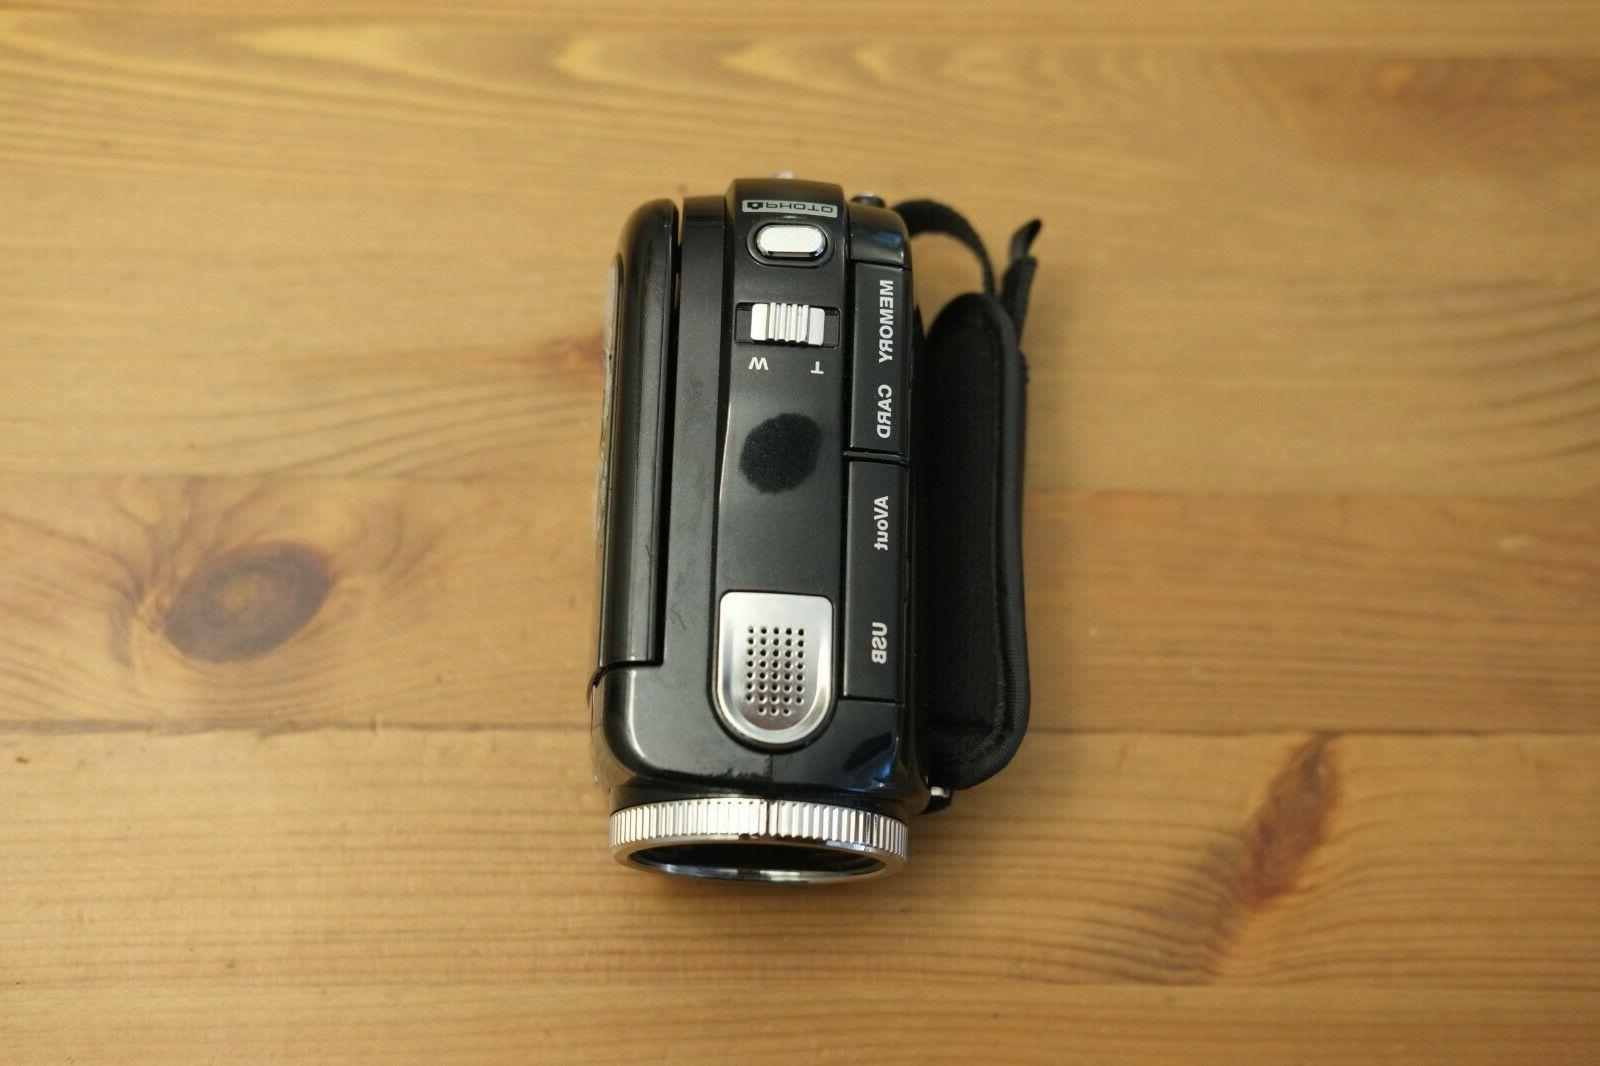 dvr 910hd camcorder